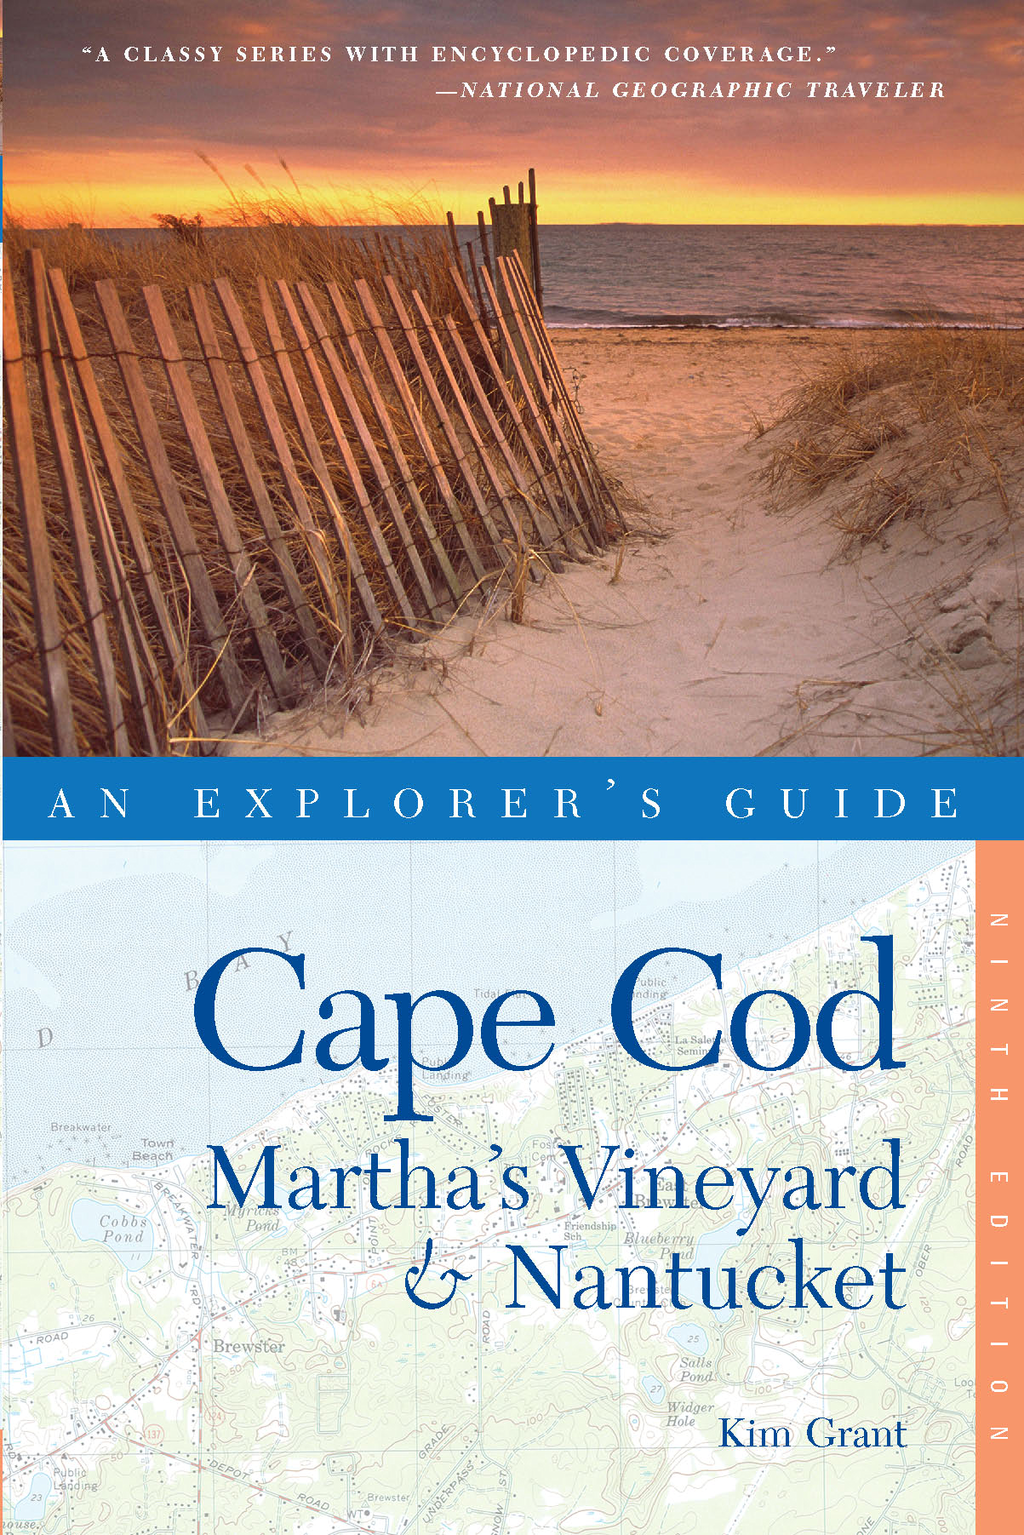 Explorer's Guide Cape Cod, Martha's Vineyard & Nantucket (Ninth Edition)  (Explorer's Complete) By: Kim Grant